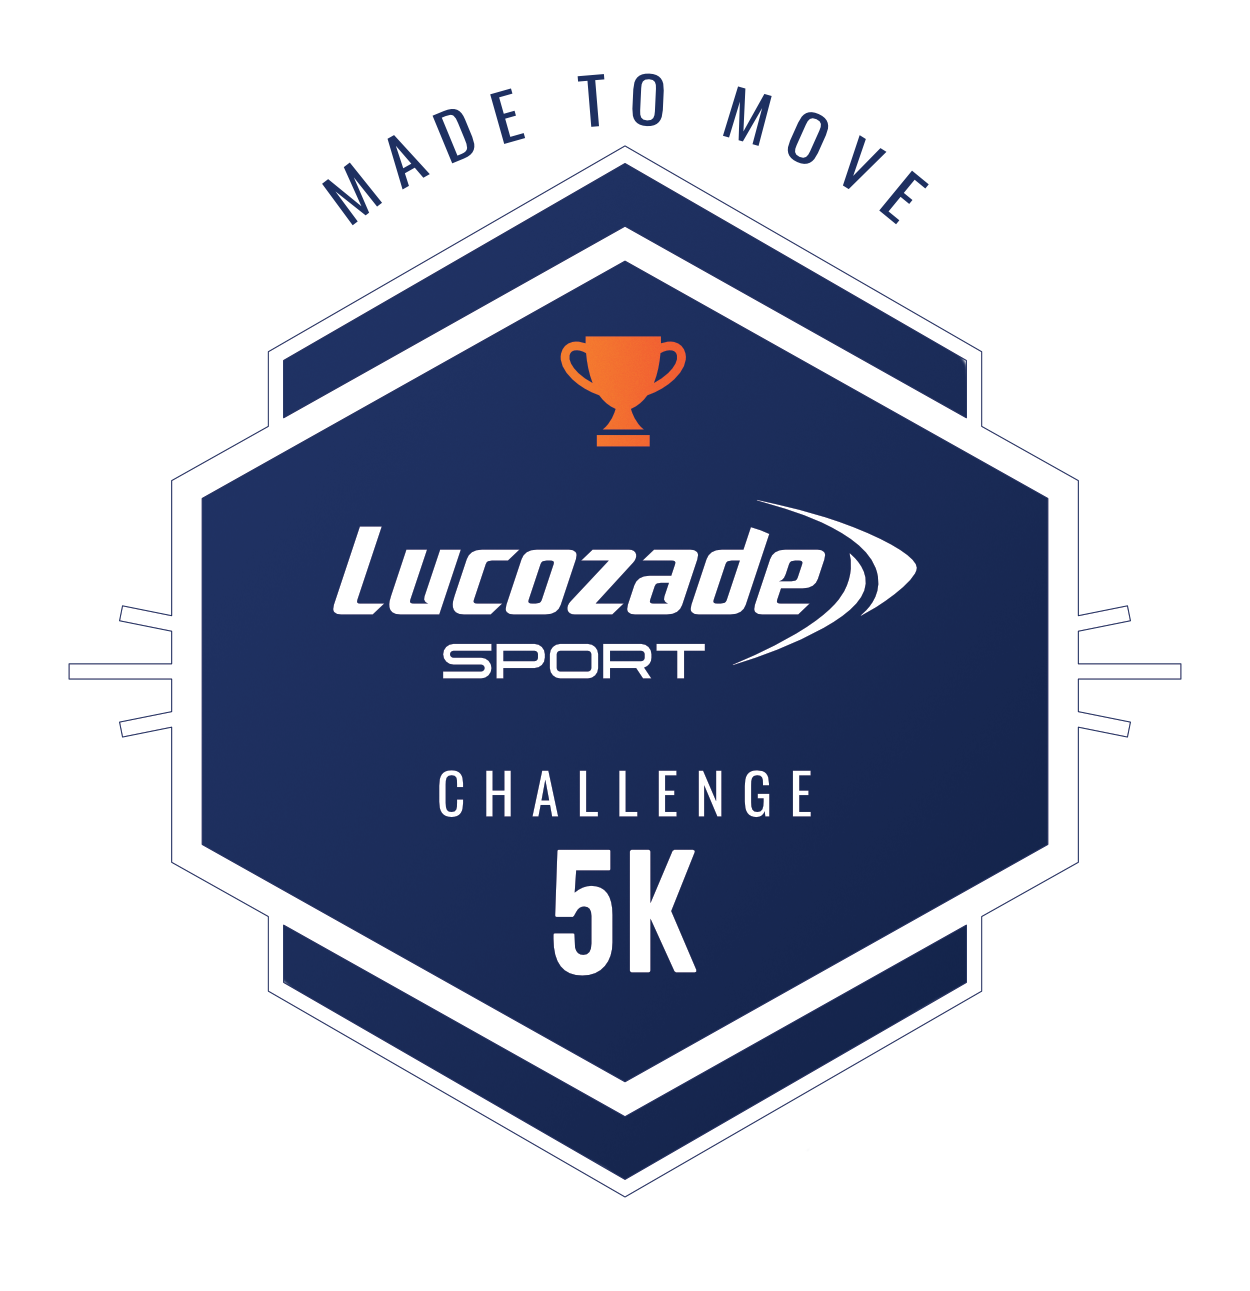 The Lucozade Sport #MadeToMove Challenge